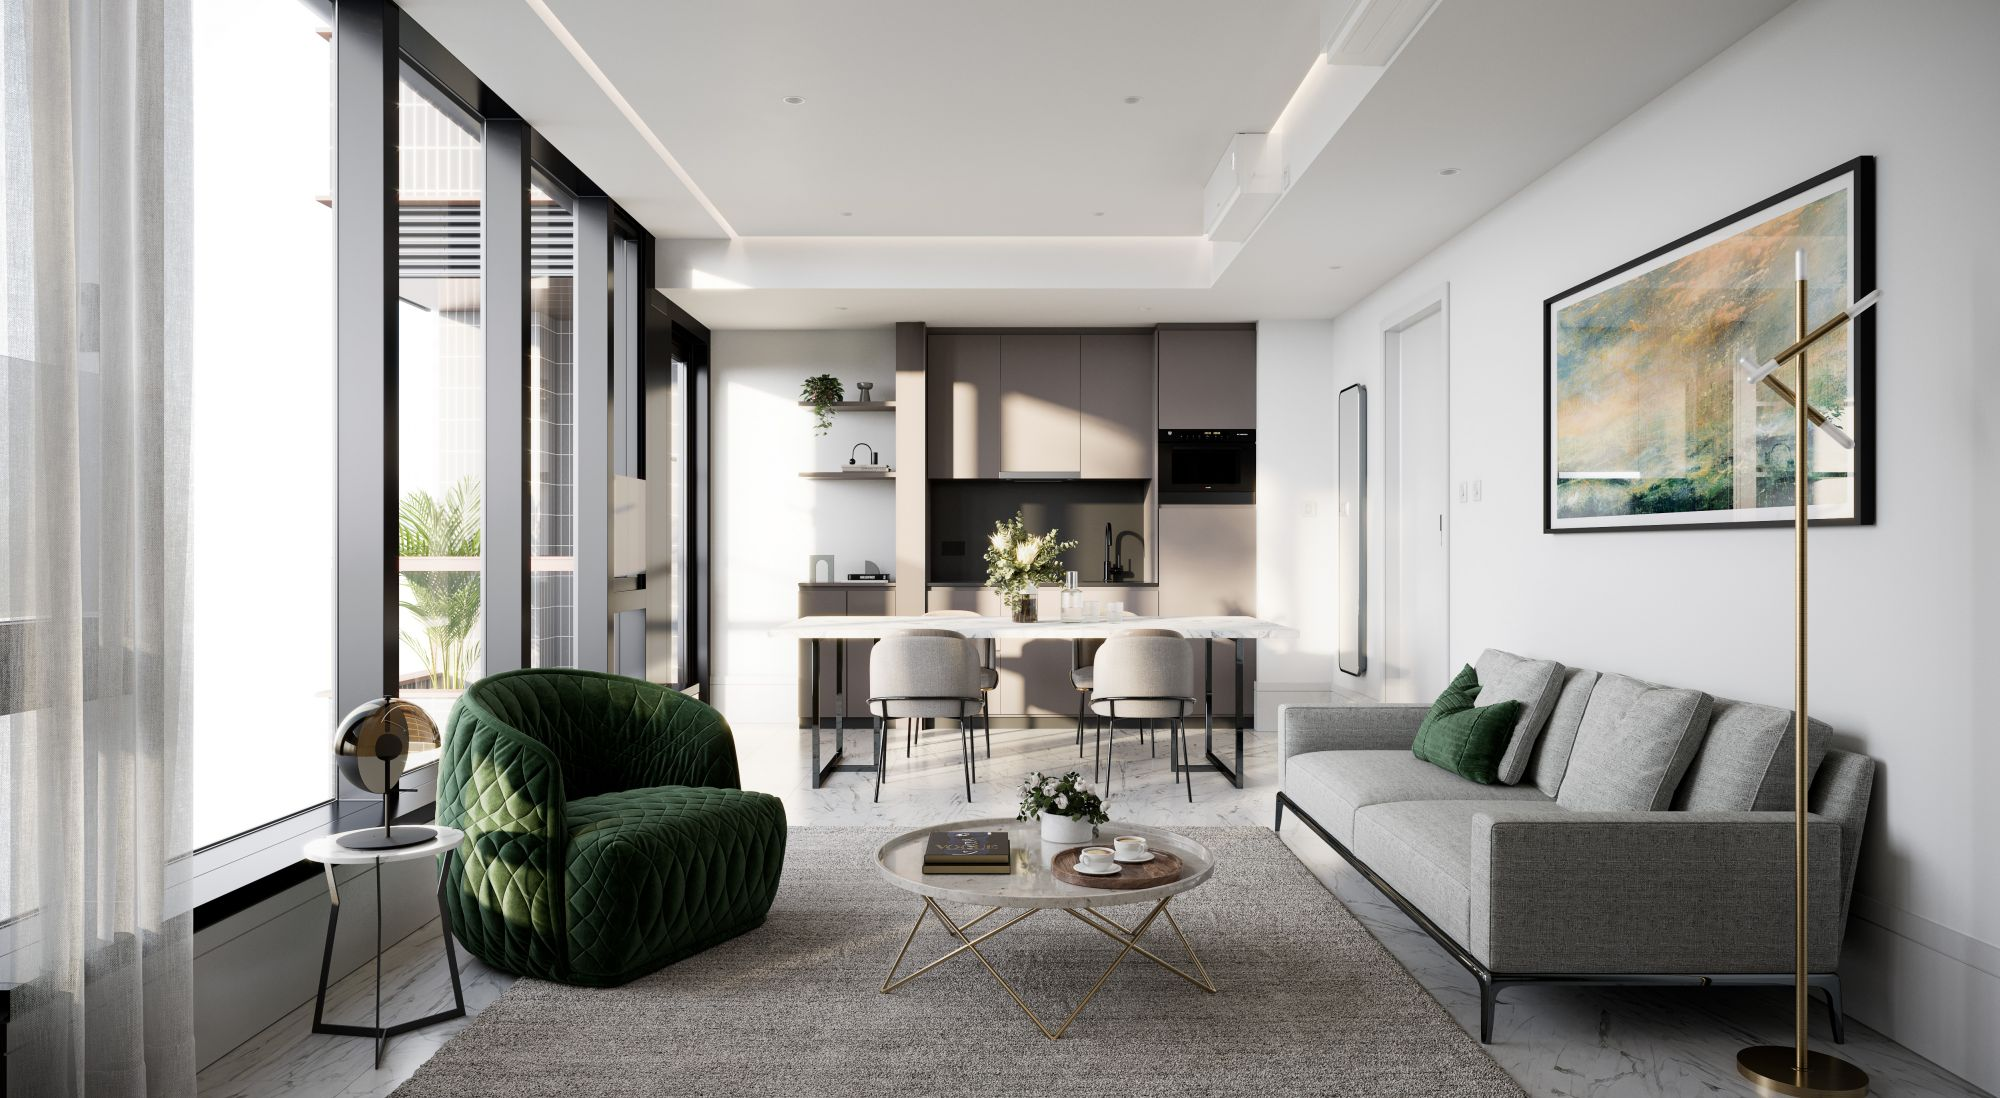 What To Expect From Eight Star Street, The Newest Upscale Residential Property In Wan Chai